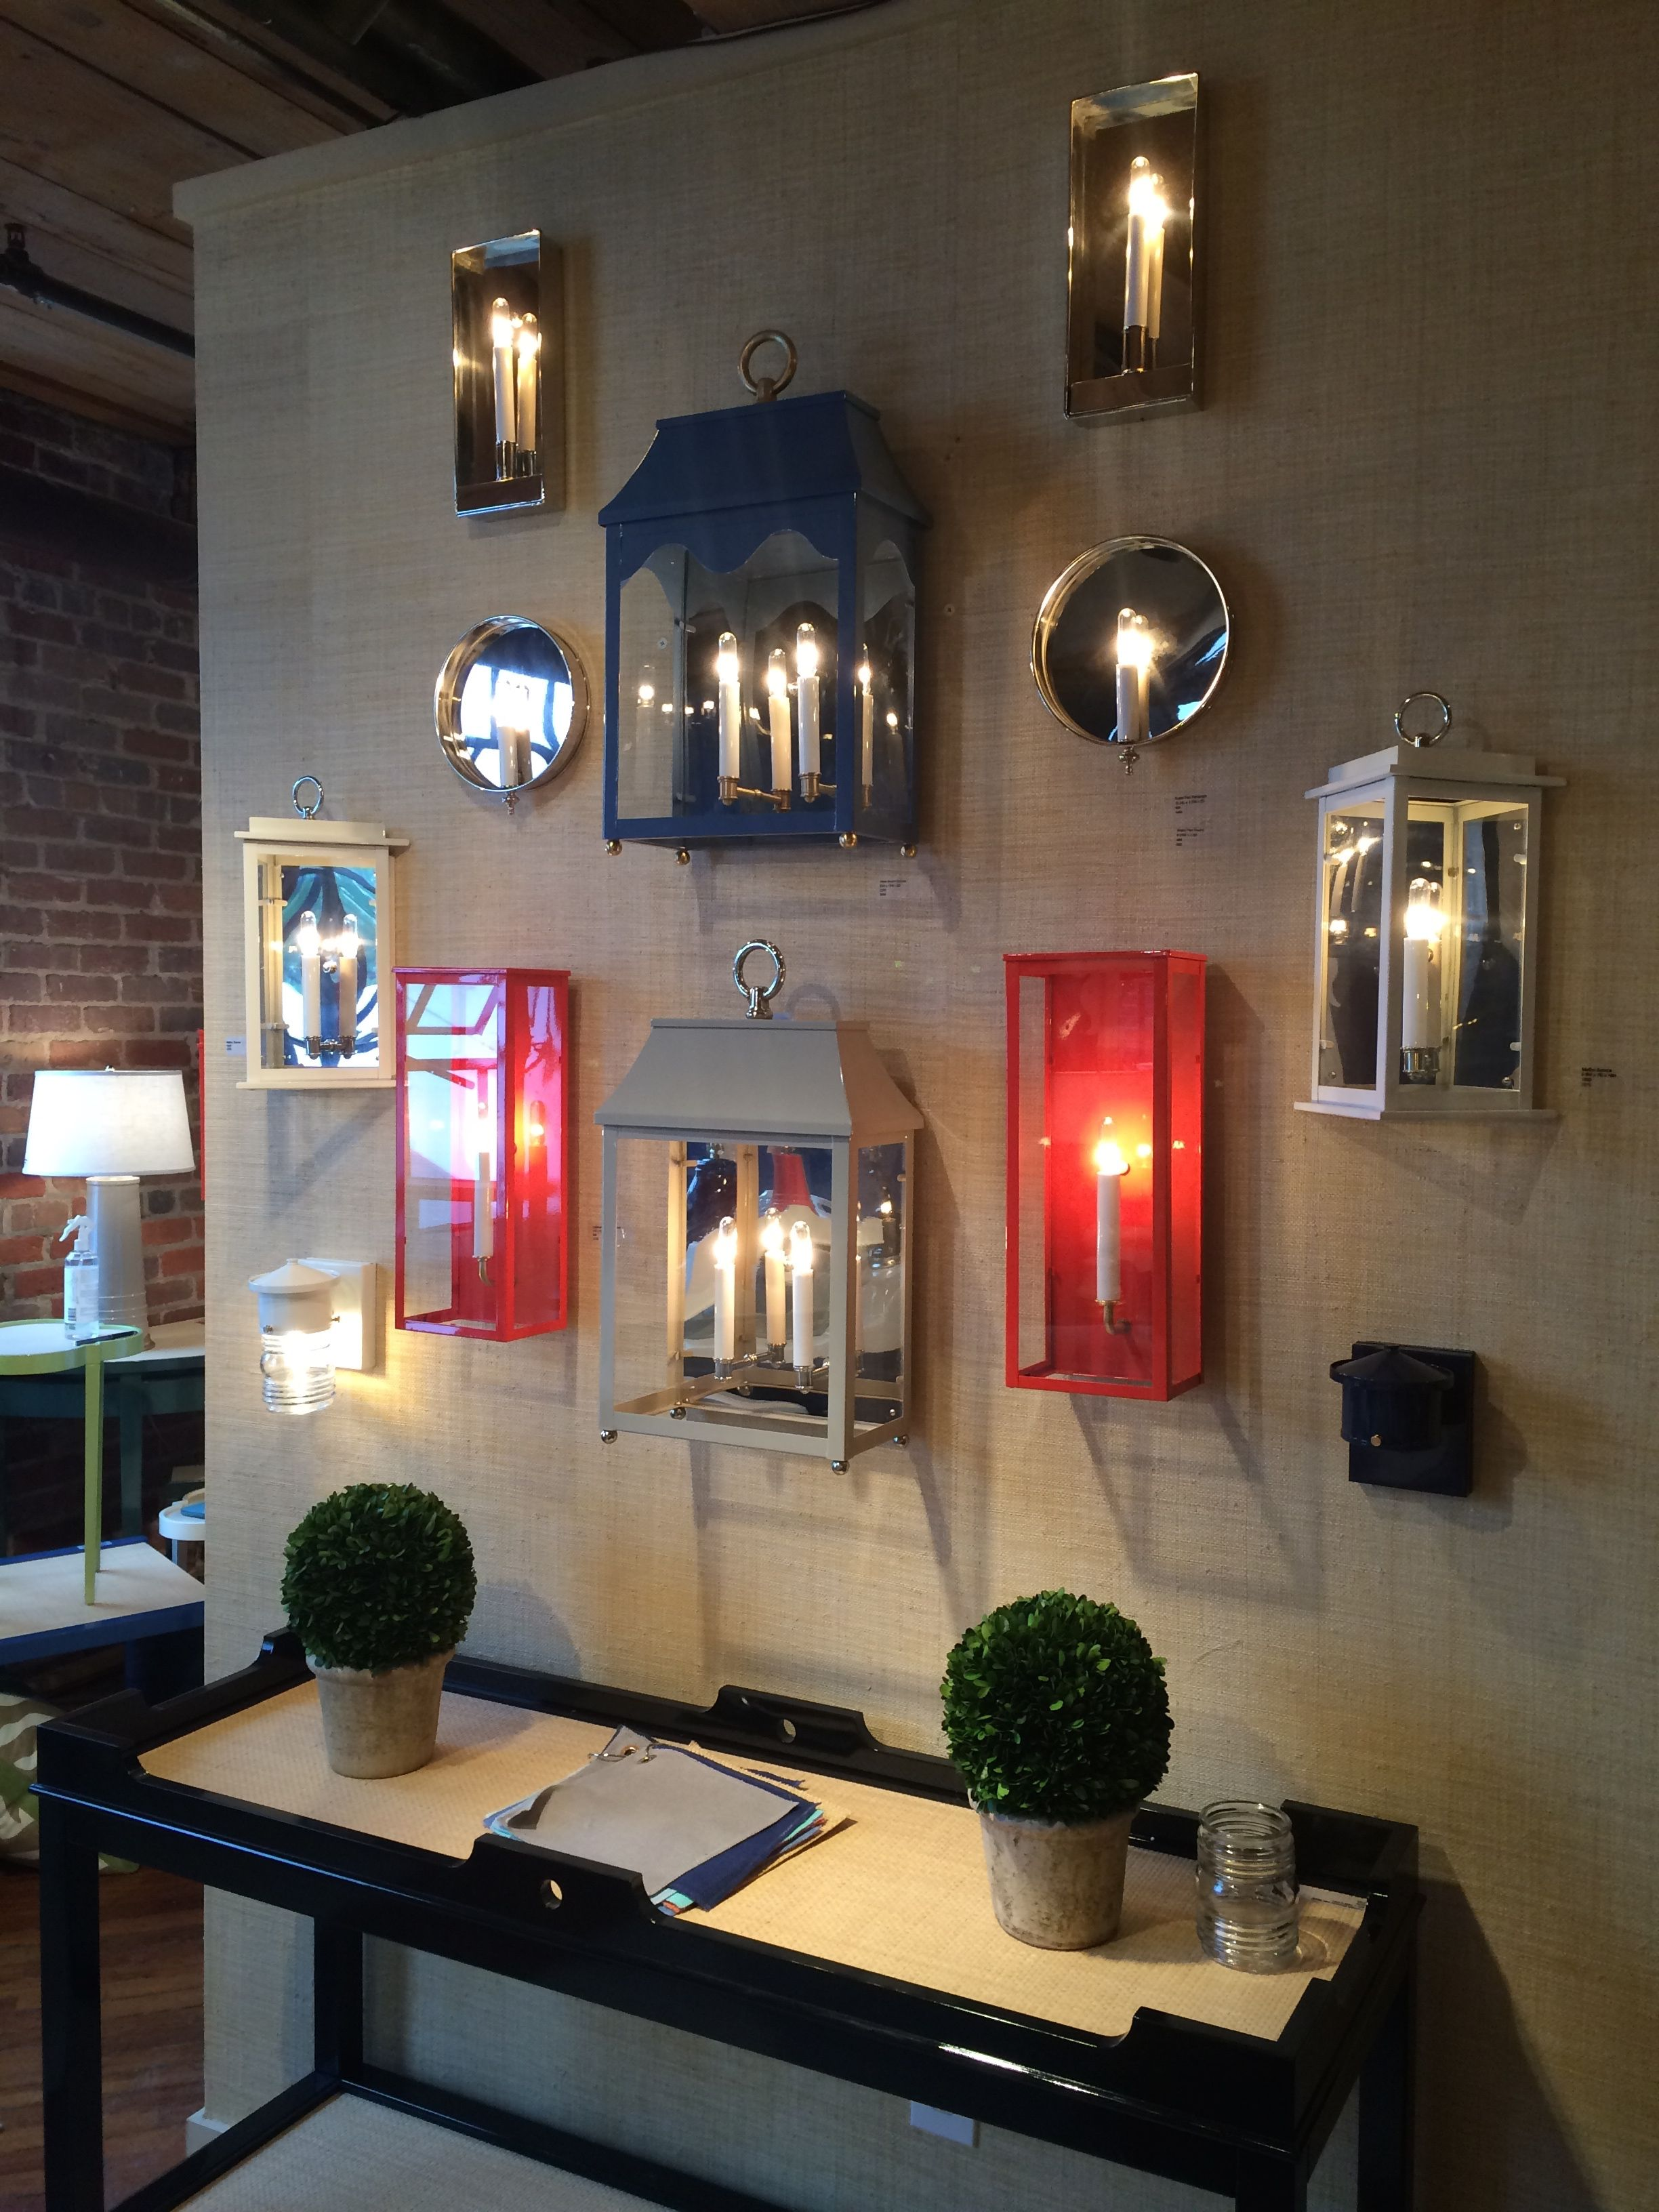 Oomph Sconce Wall From High Point Market Lighting & oomph lighting | Aquariumwalls.org